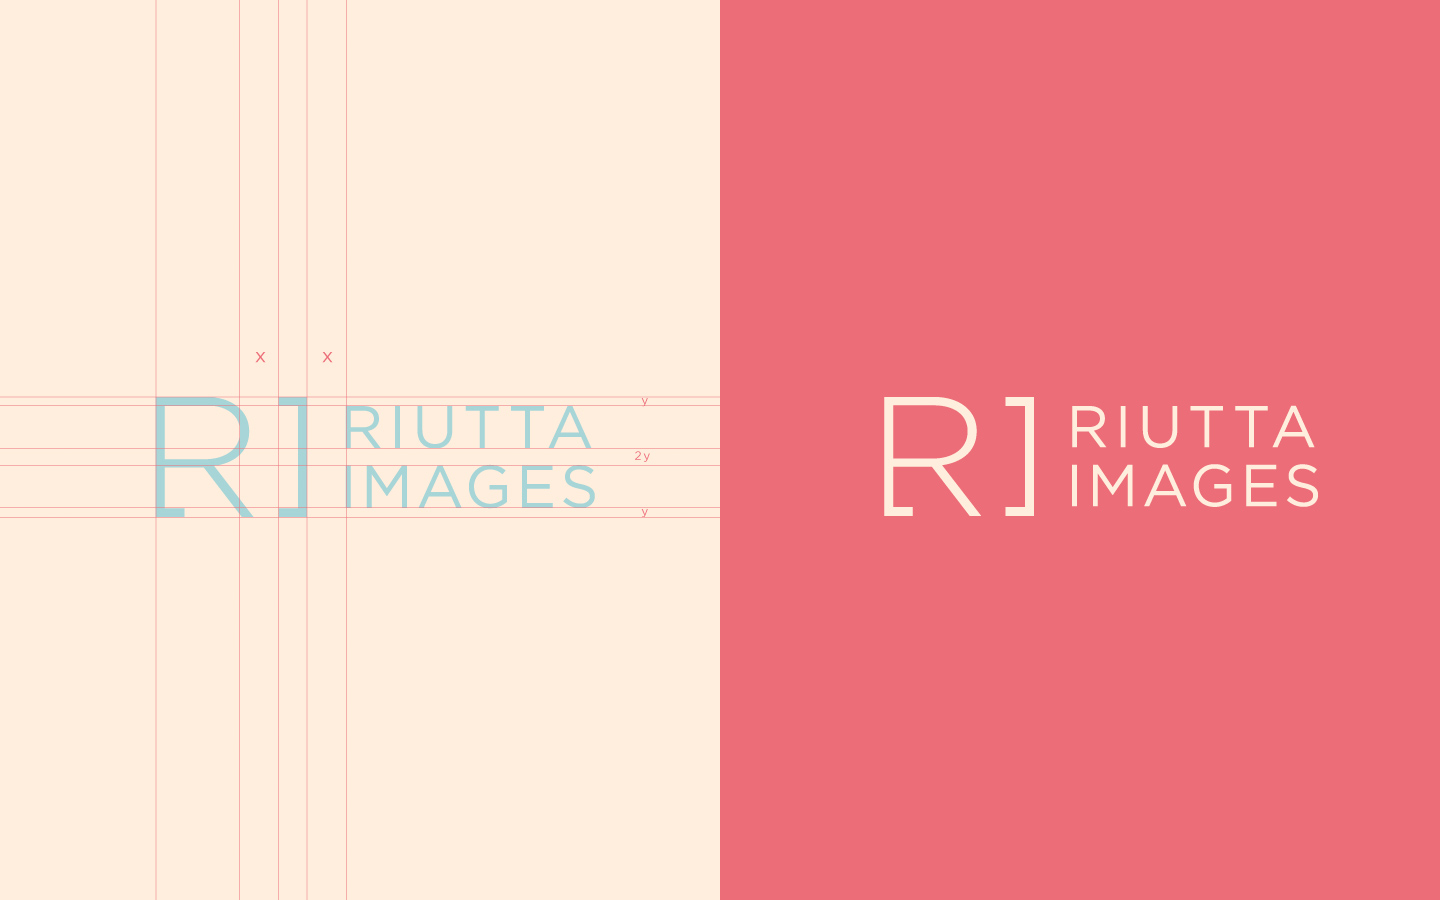 Riutta_images_application9